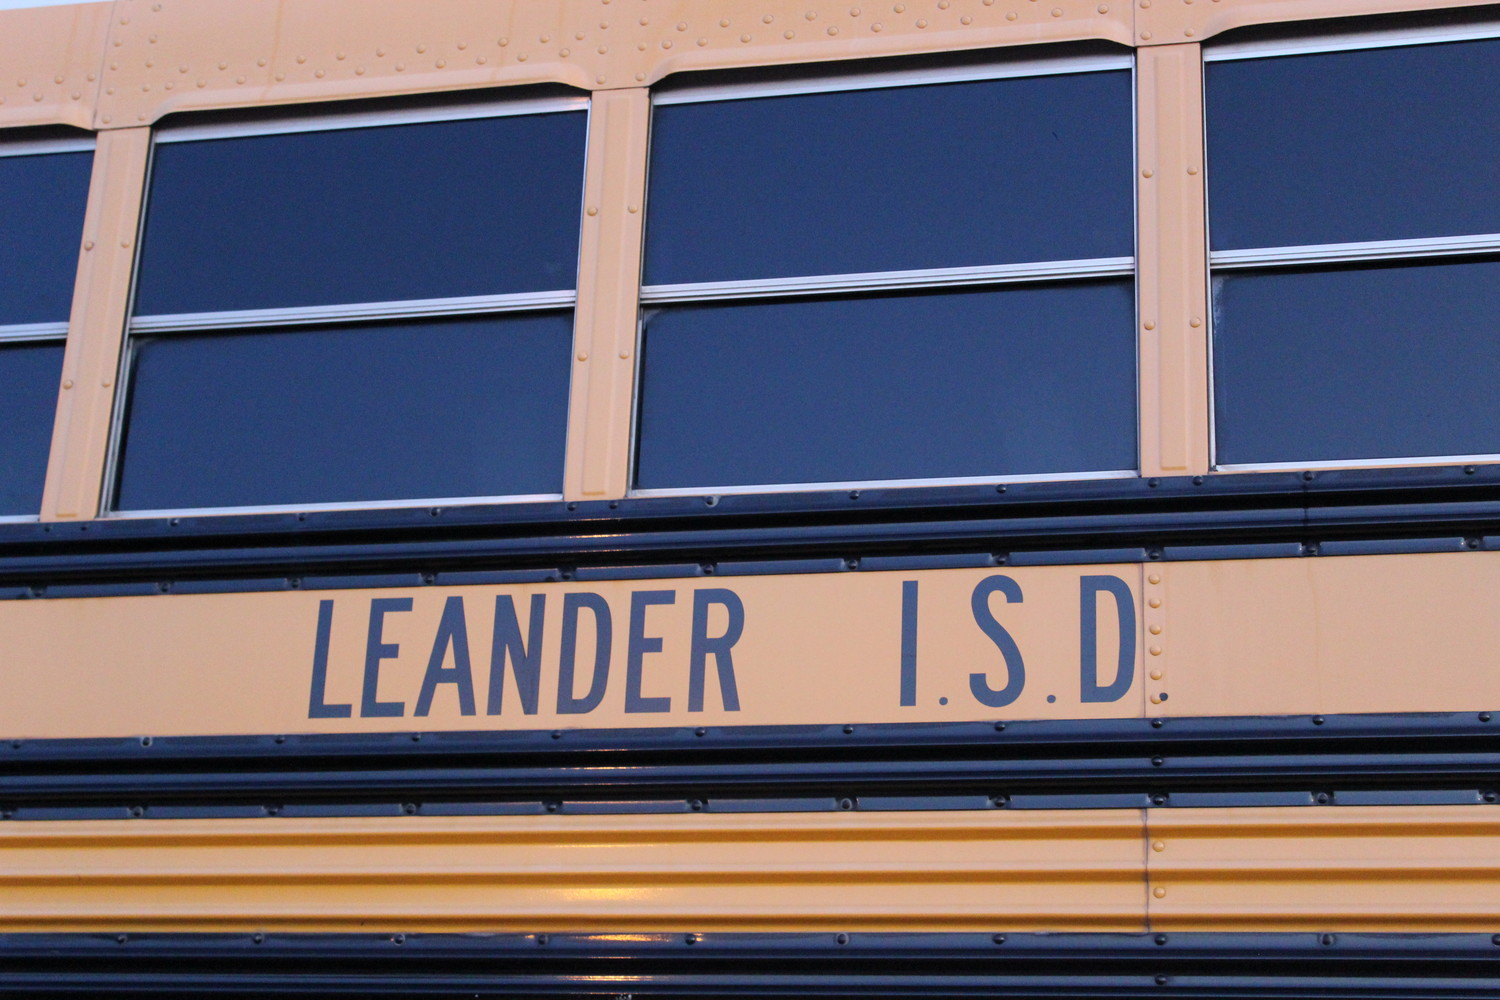 The Leander ISD board reviewed another attendance zoning scenario at its April 4 meeting and will obtain feedback from the community on Scenario D at the April 18 meeting.